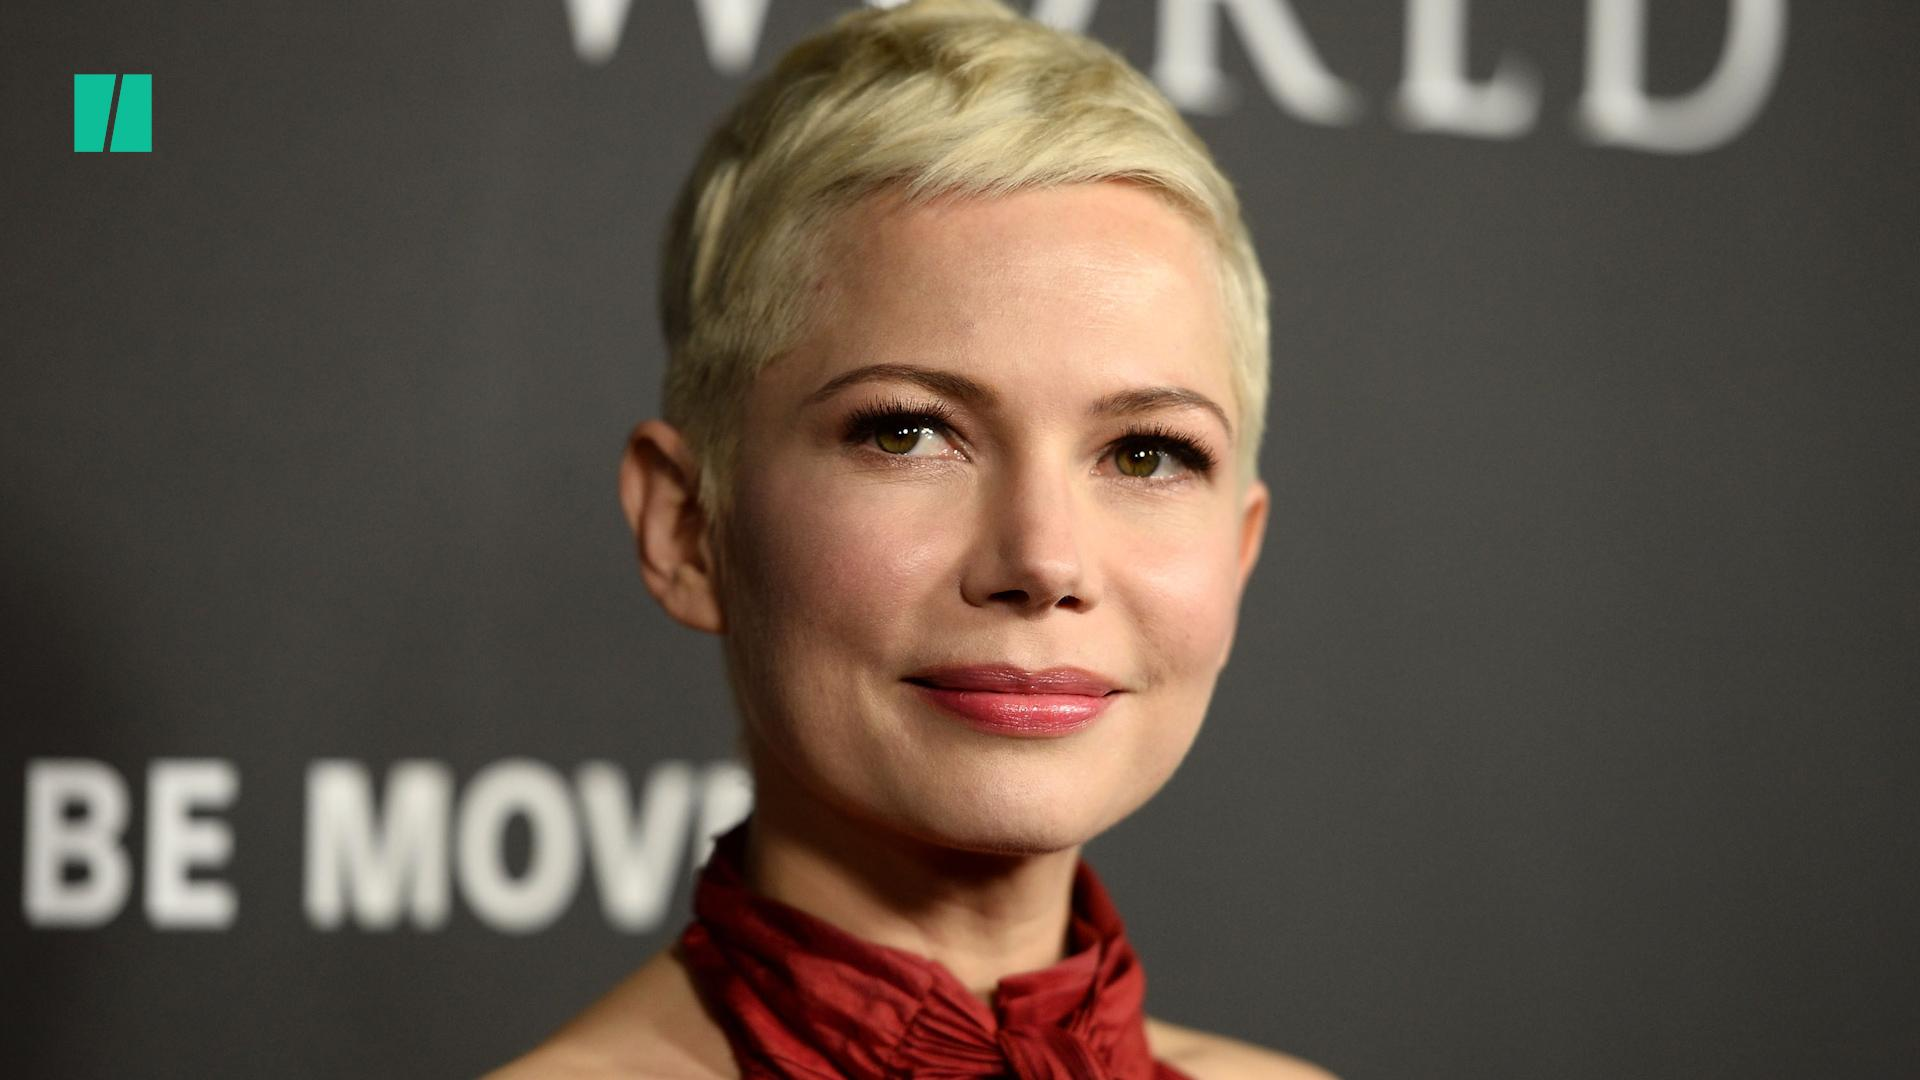 Michelle Williams Brings Busy Philipps To Tears In Emmys Speech On Gender Equality